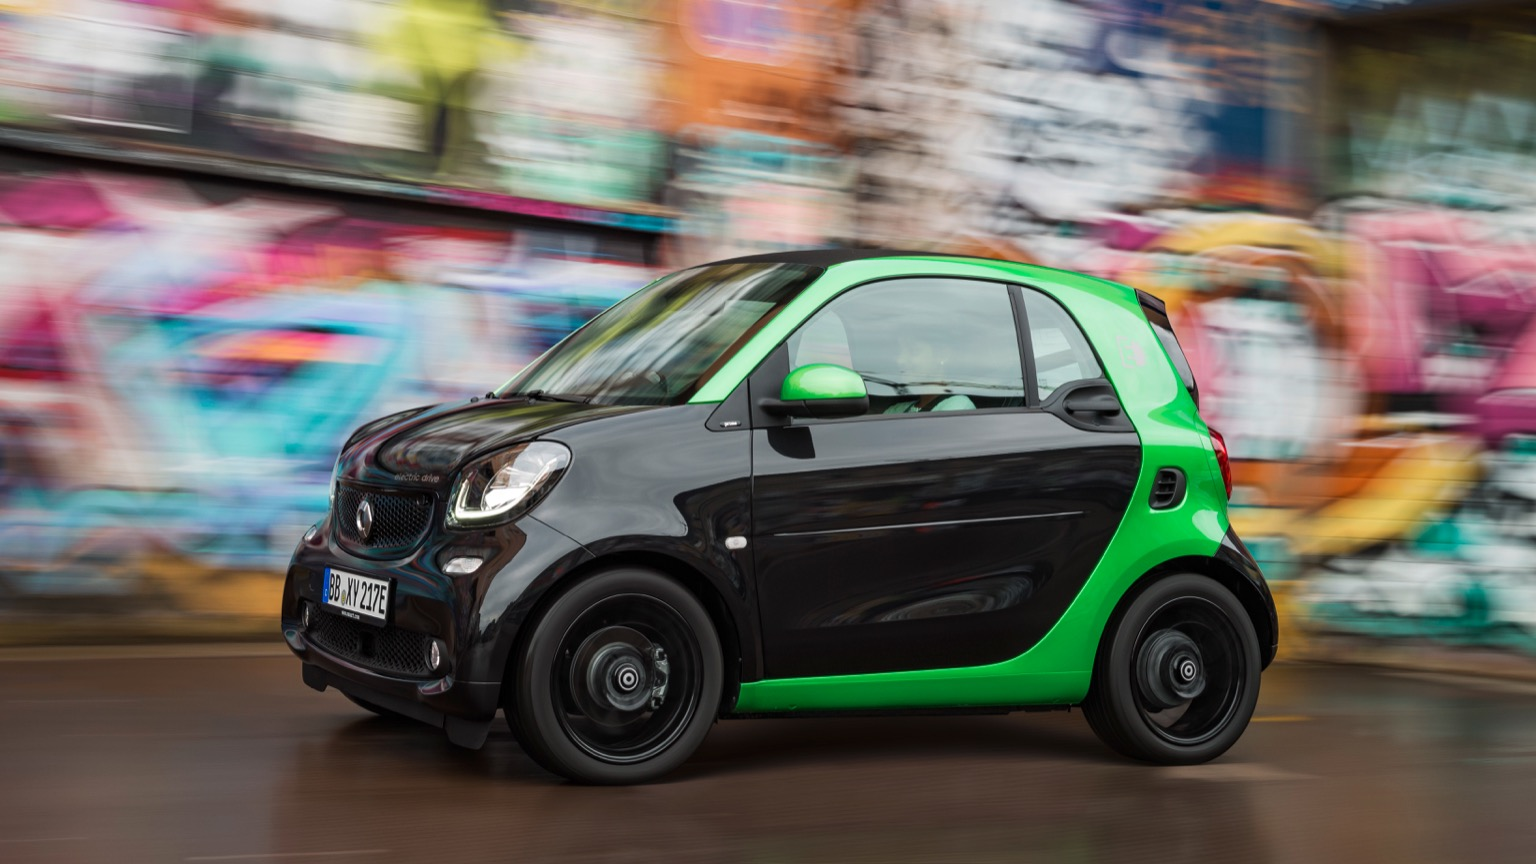 Smart EQ fortwo coupe (2018)